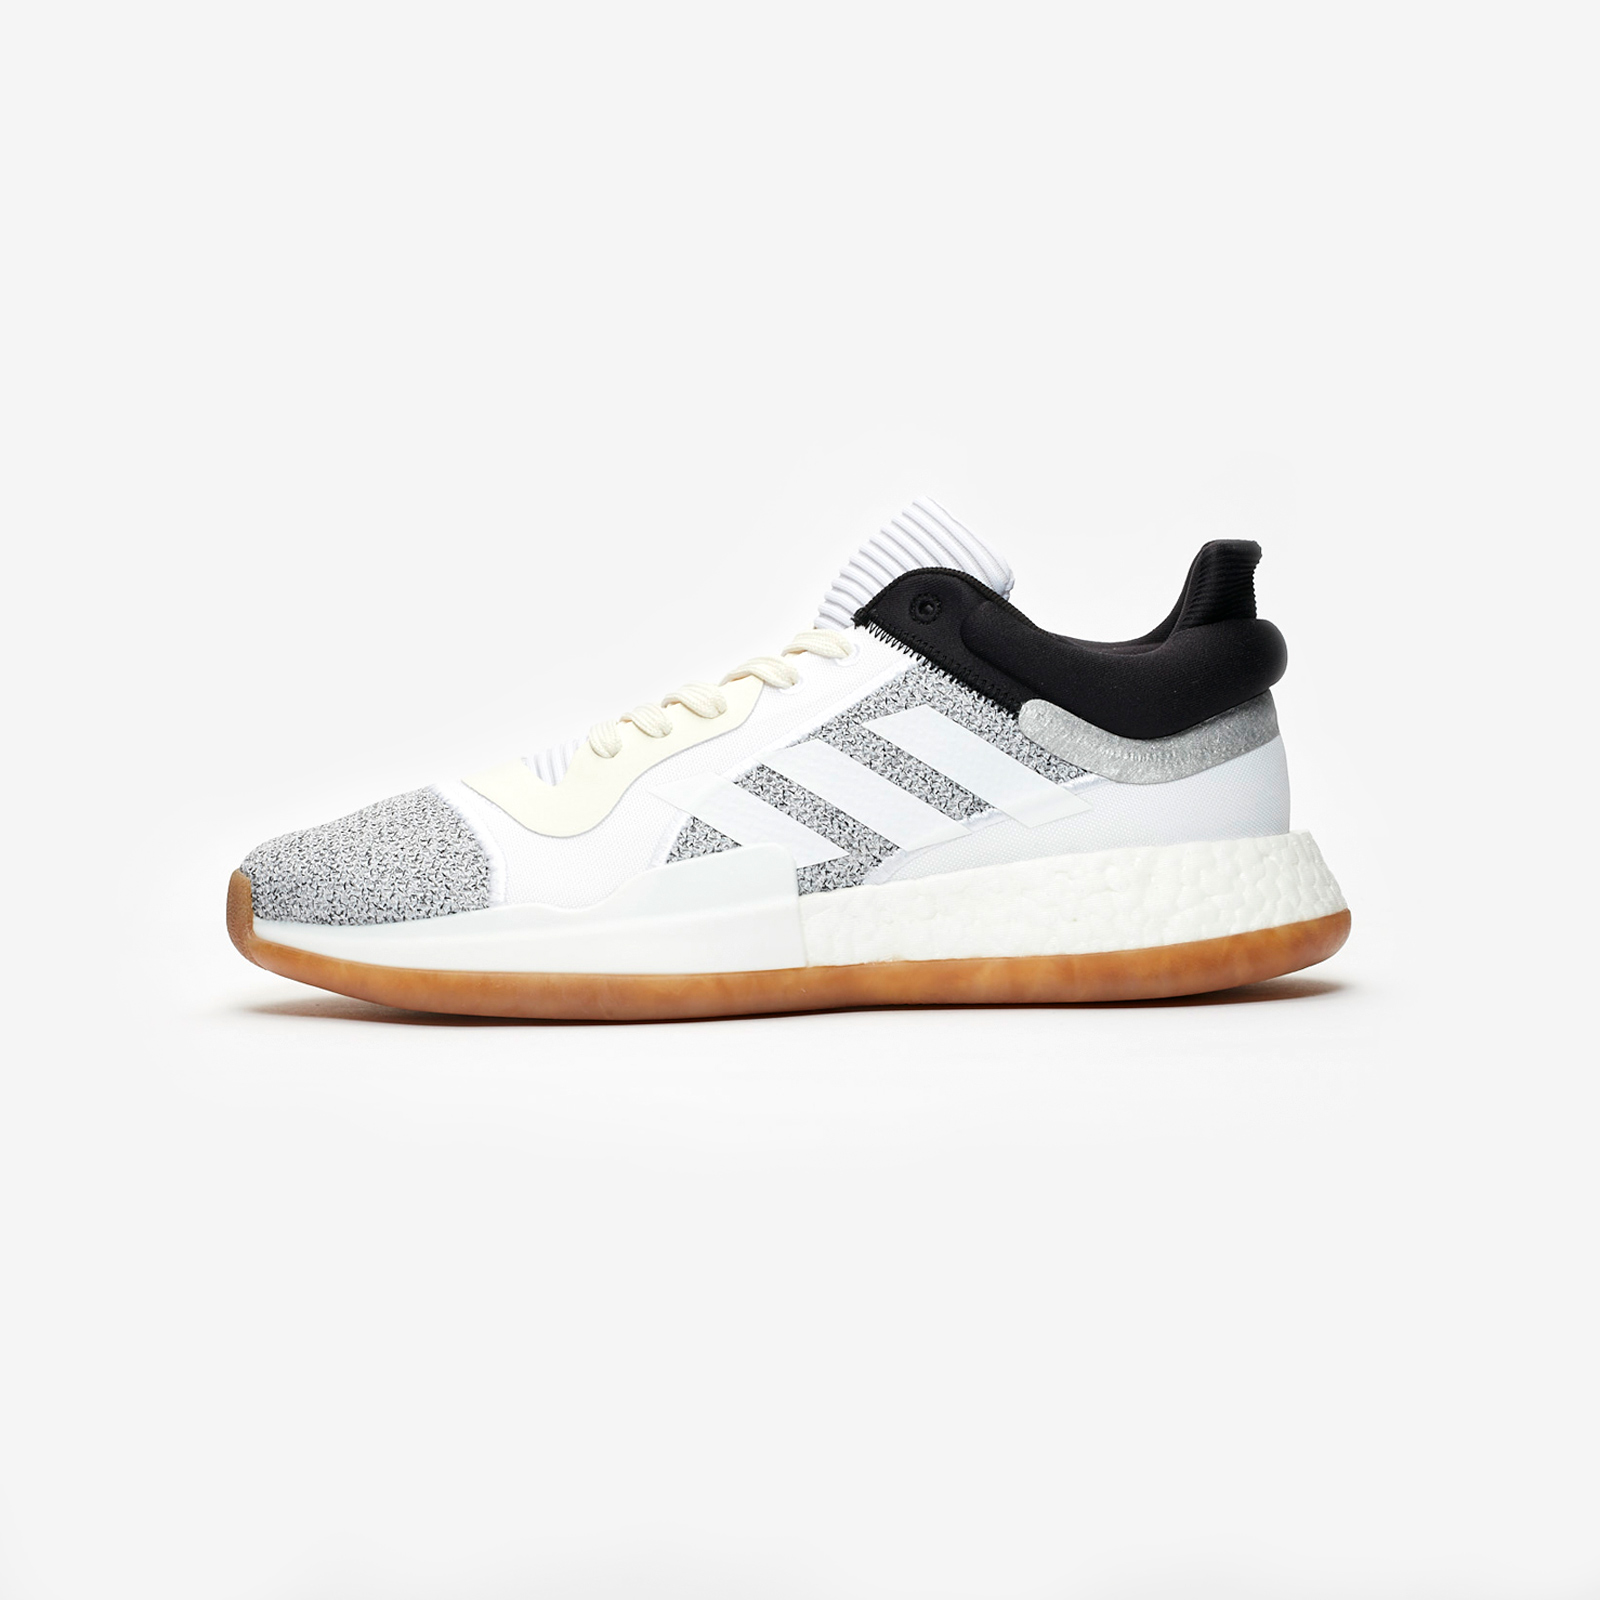 adidas Marquee Boost Low - D96933 - Sneakersnstuff  c5c6fc2ae0d5